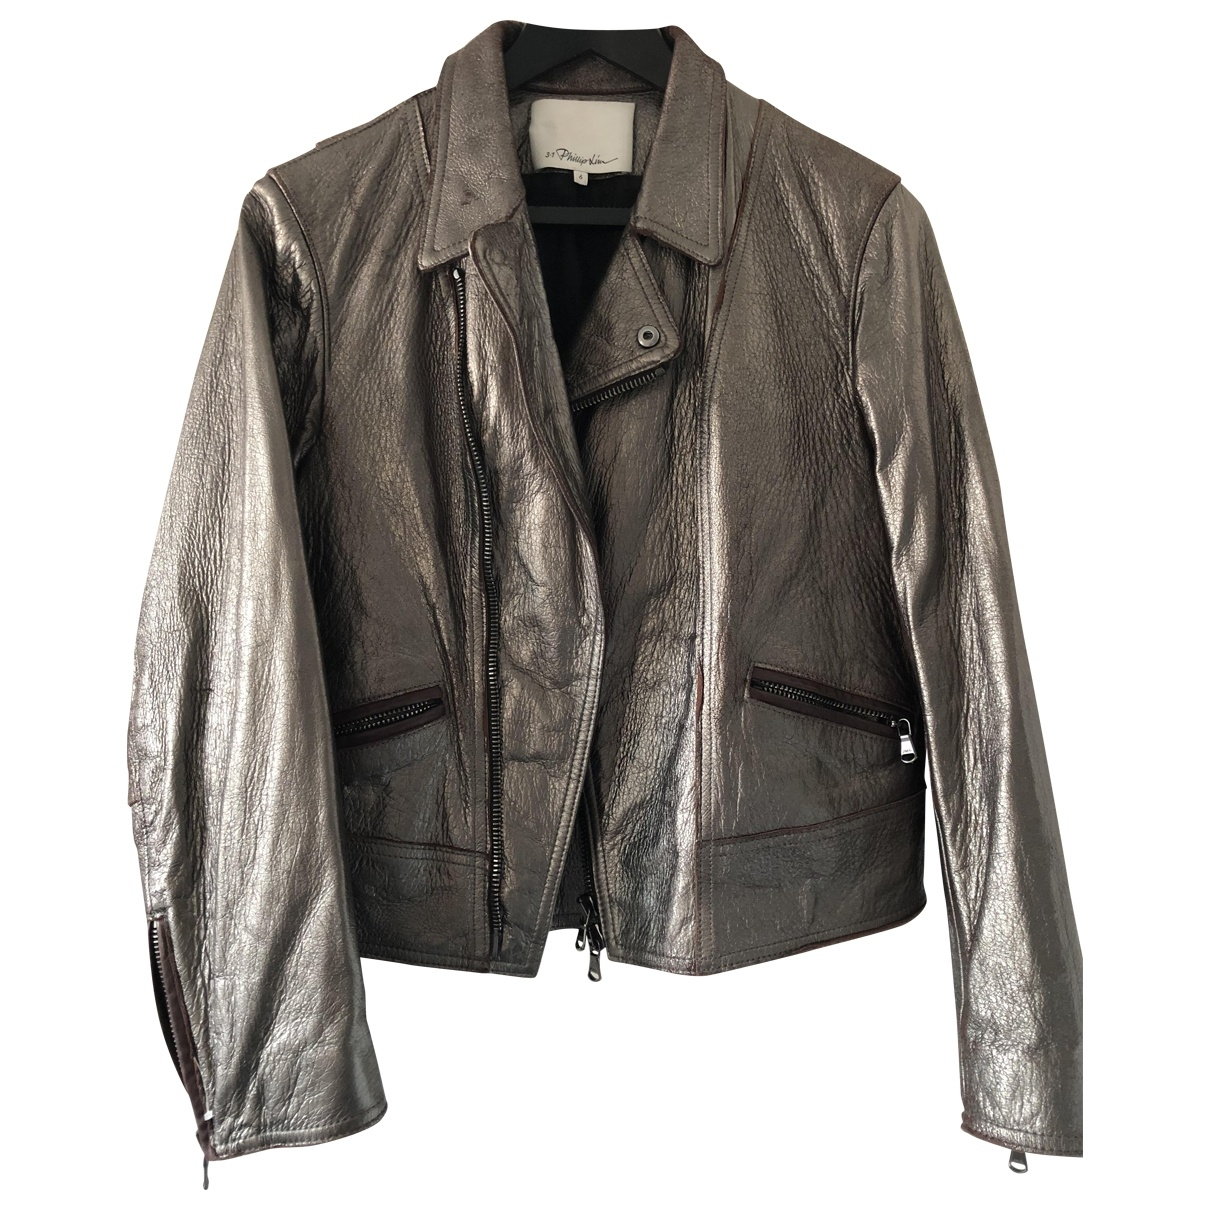 3.1 Phillip Lim \N Metallic Leather jacket for Women One Size 0-5